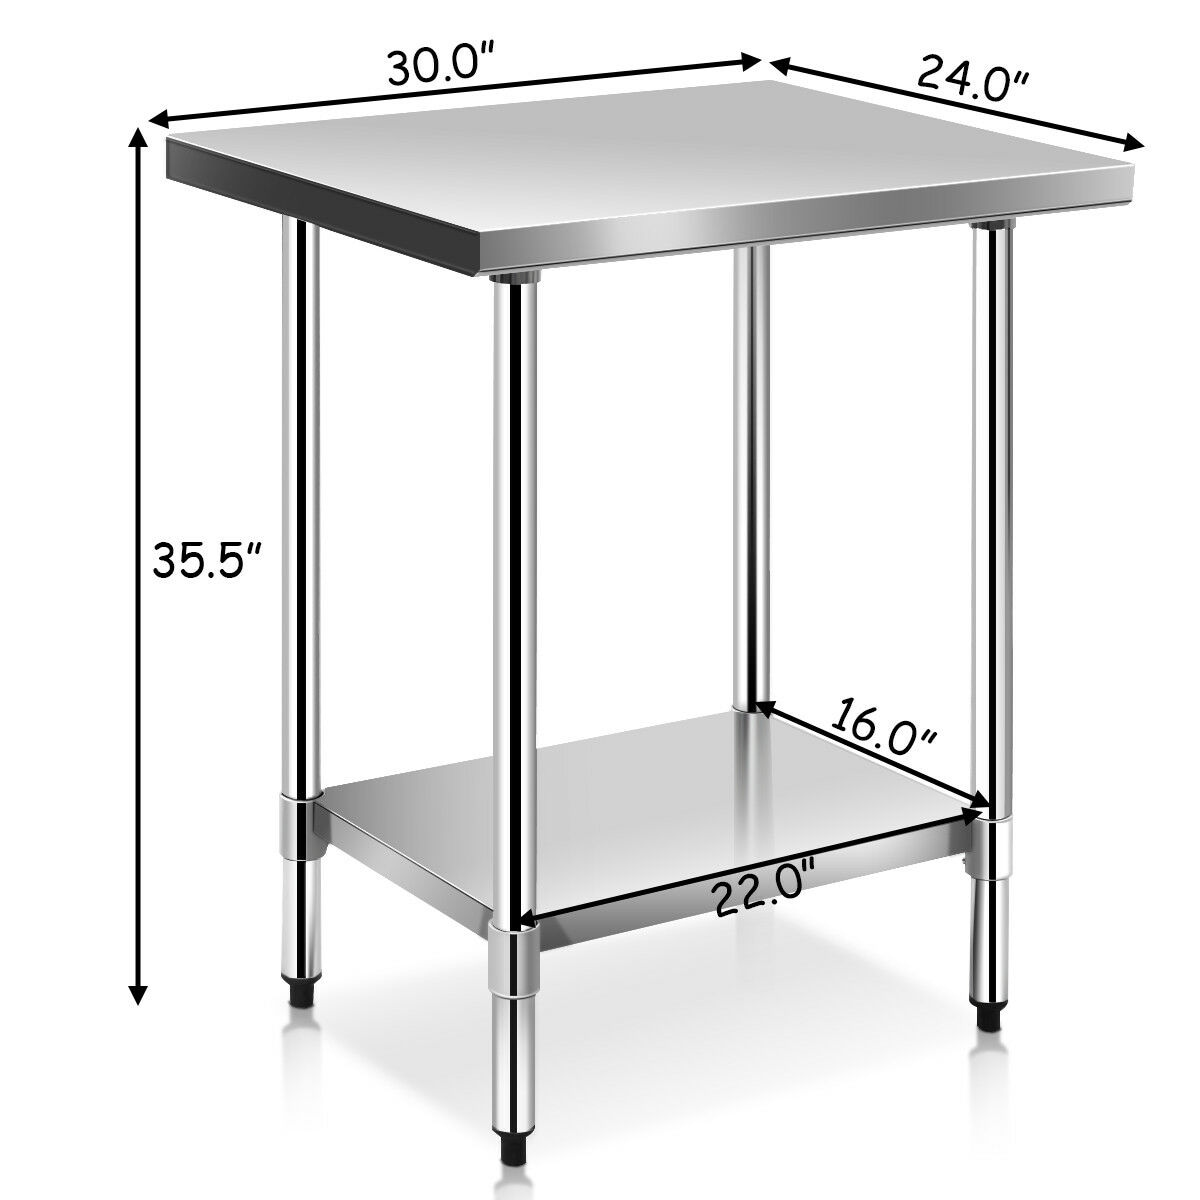 Stainless Restaurant Table Costway 24 X 30 Stainless Steel Work Prep Table Commercial Kitchen Restaurant White